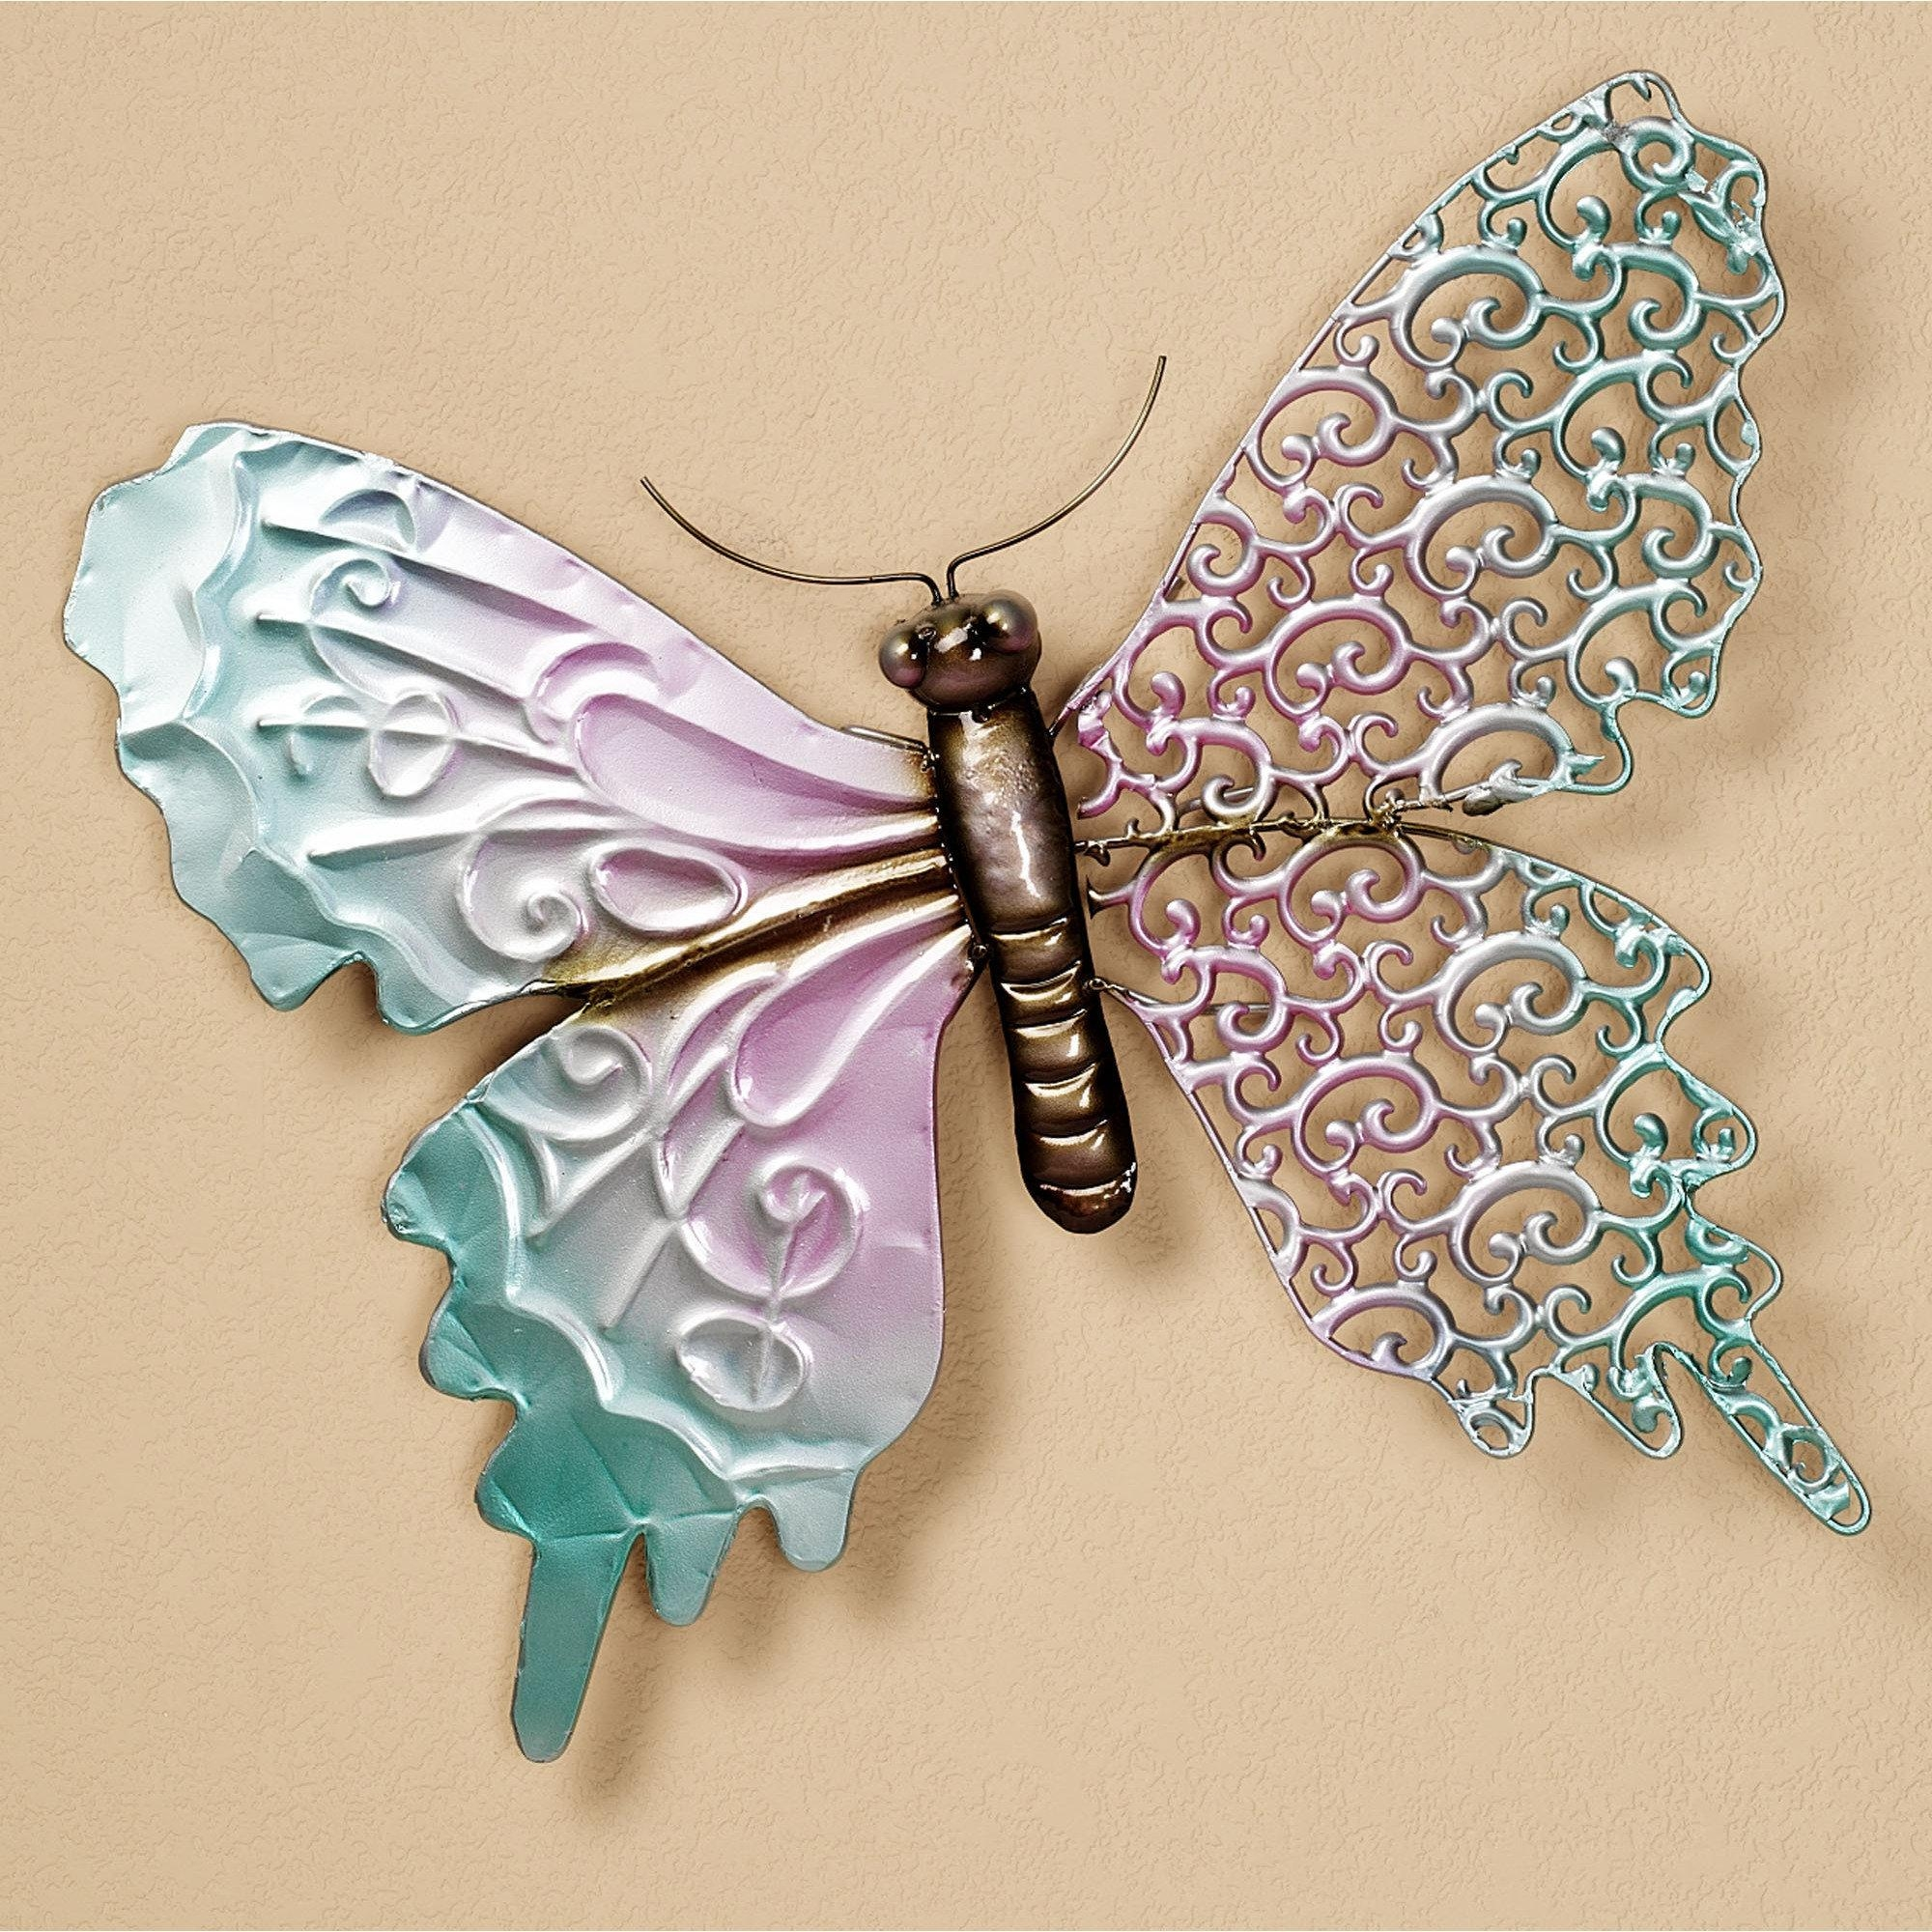 Wall Art Ideas Design : Acid Soldier Metal Butterfly Wall Art With White Metal Butterfly Wall Art (View 11 of 20)